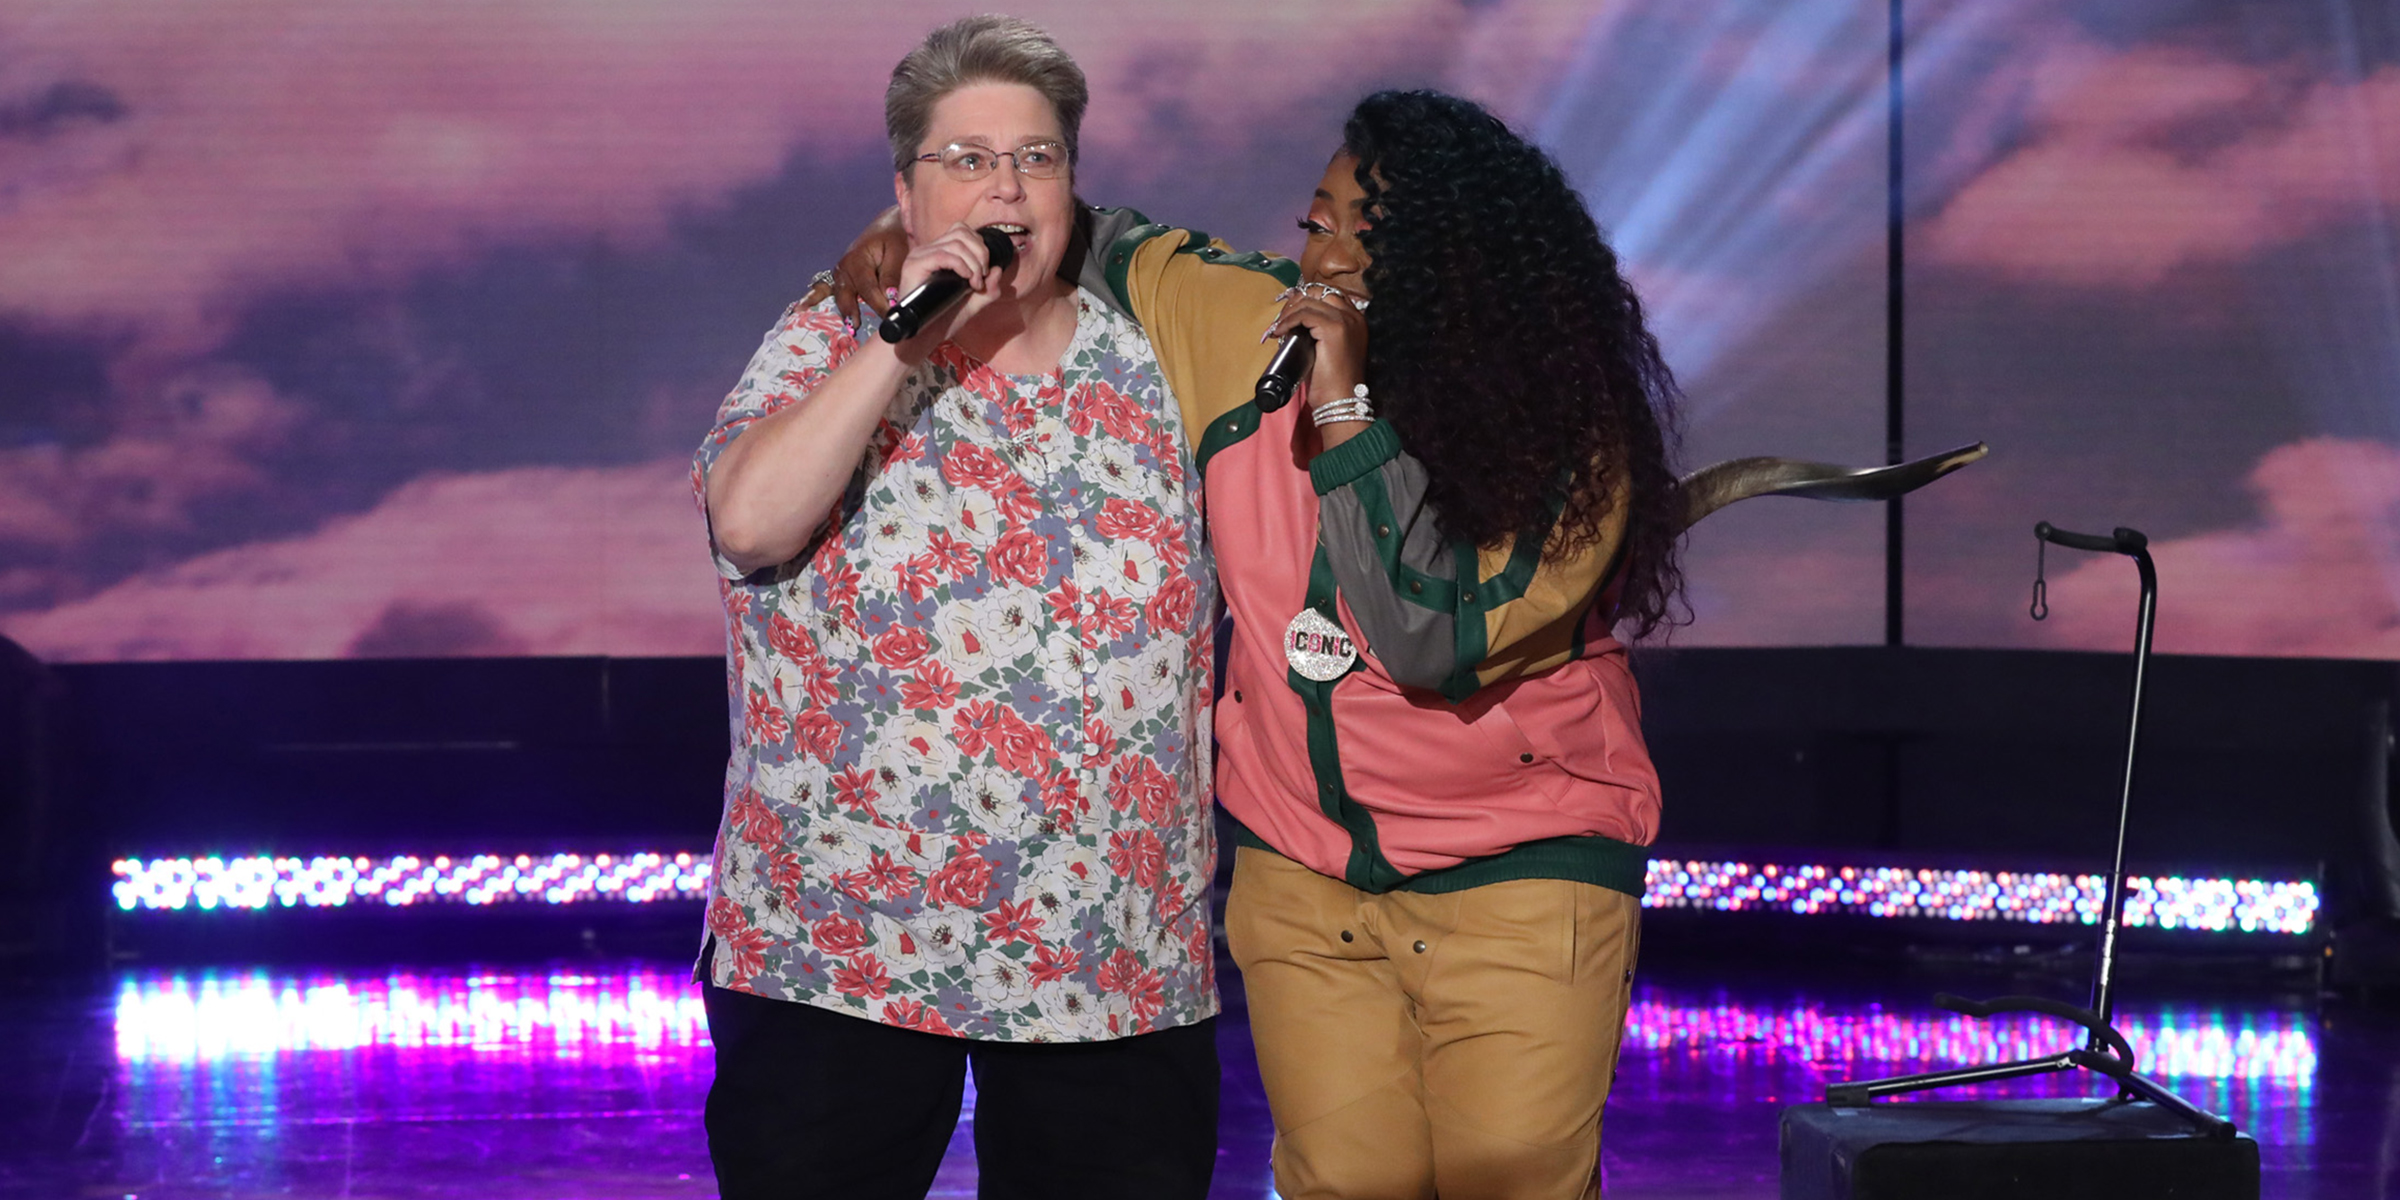 missy elliott surprises work it viral star by joining her for duet